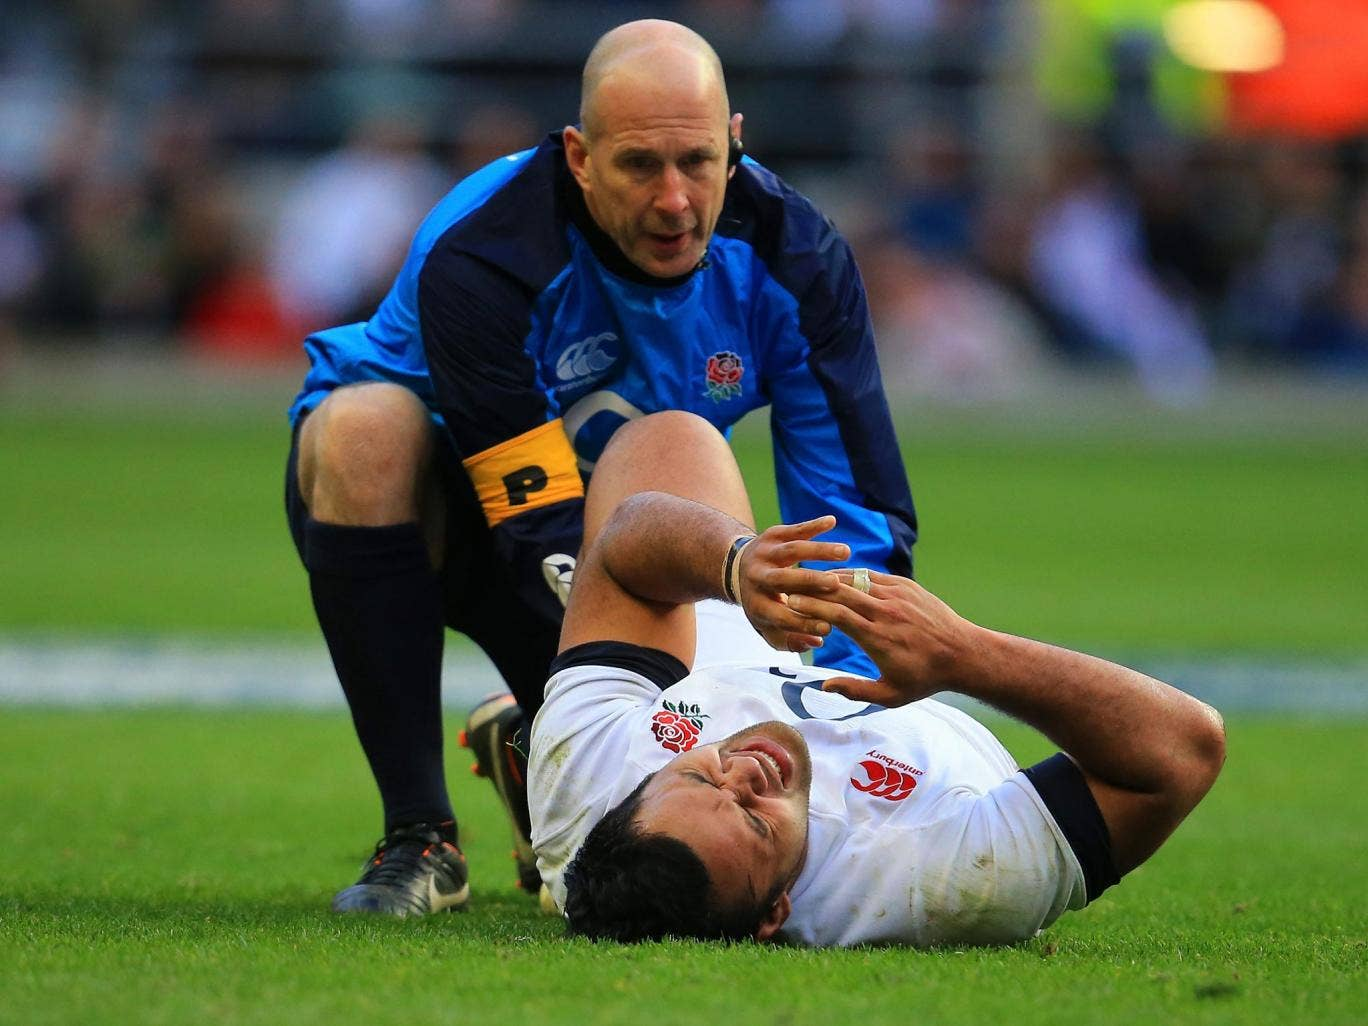 Billy Vunipola receives treatment on his injured ankle at Twickenham on Saturday